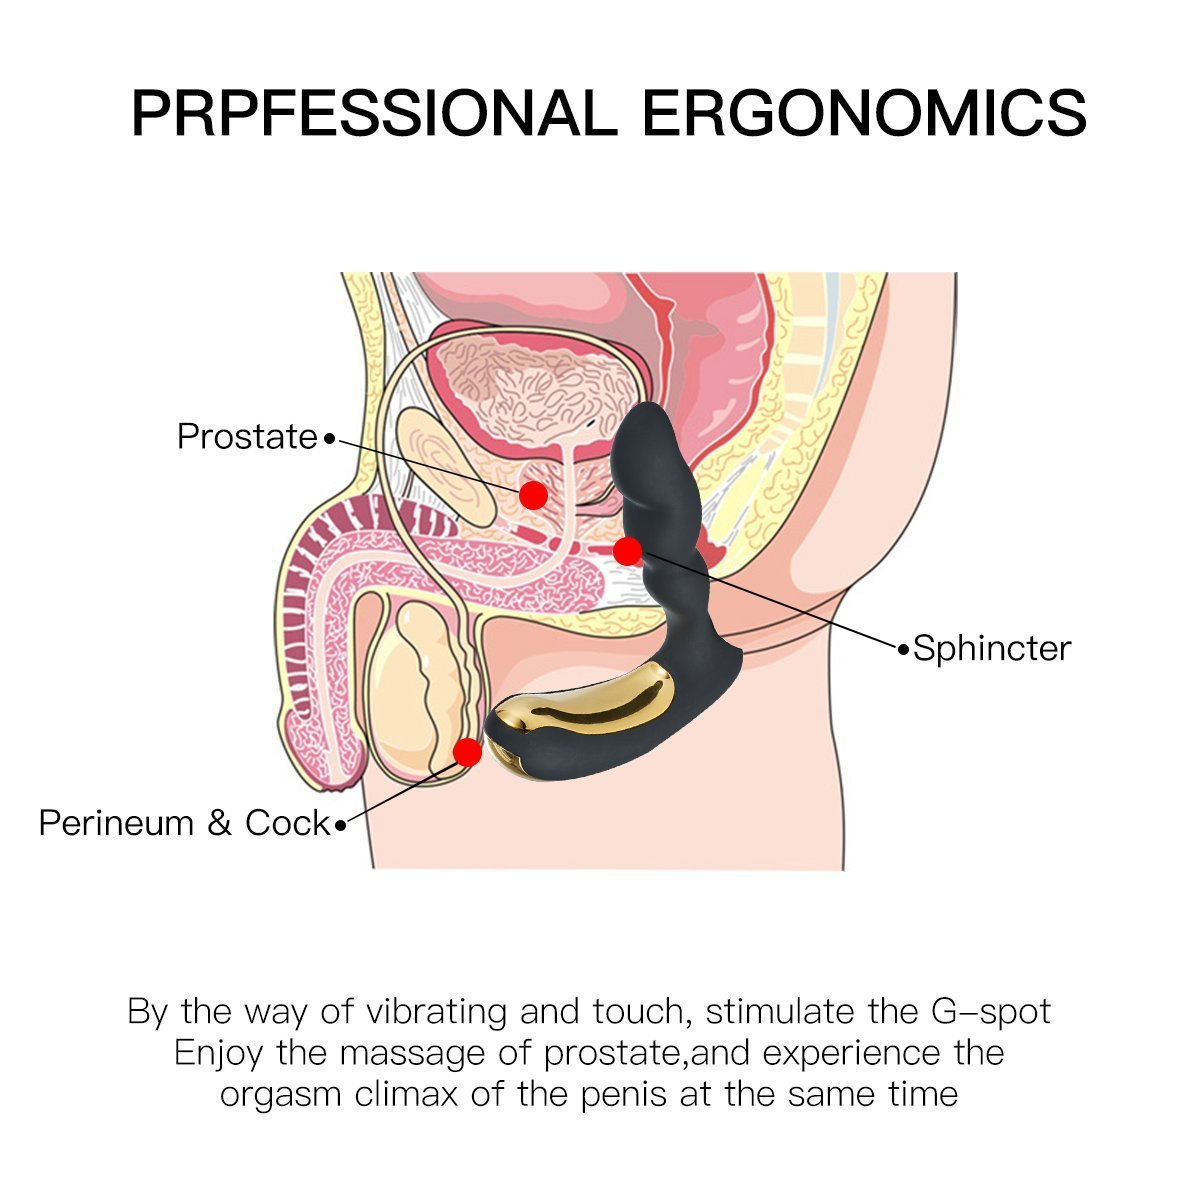 Stimulate perineum